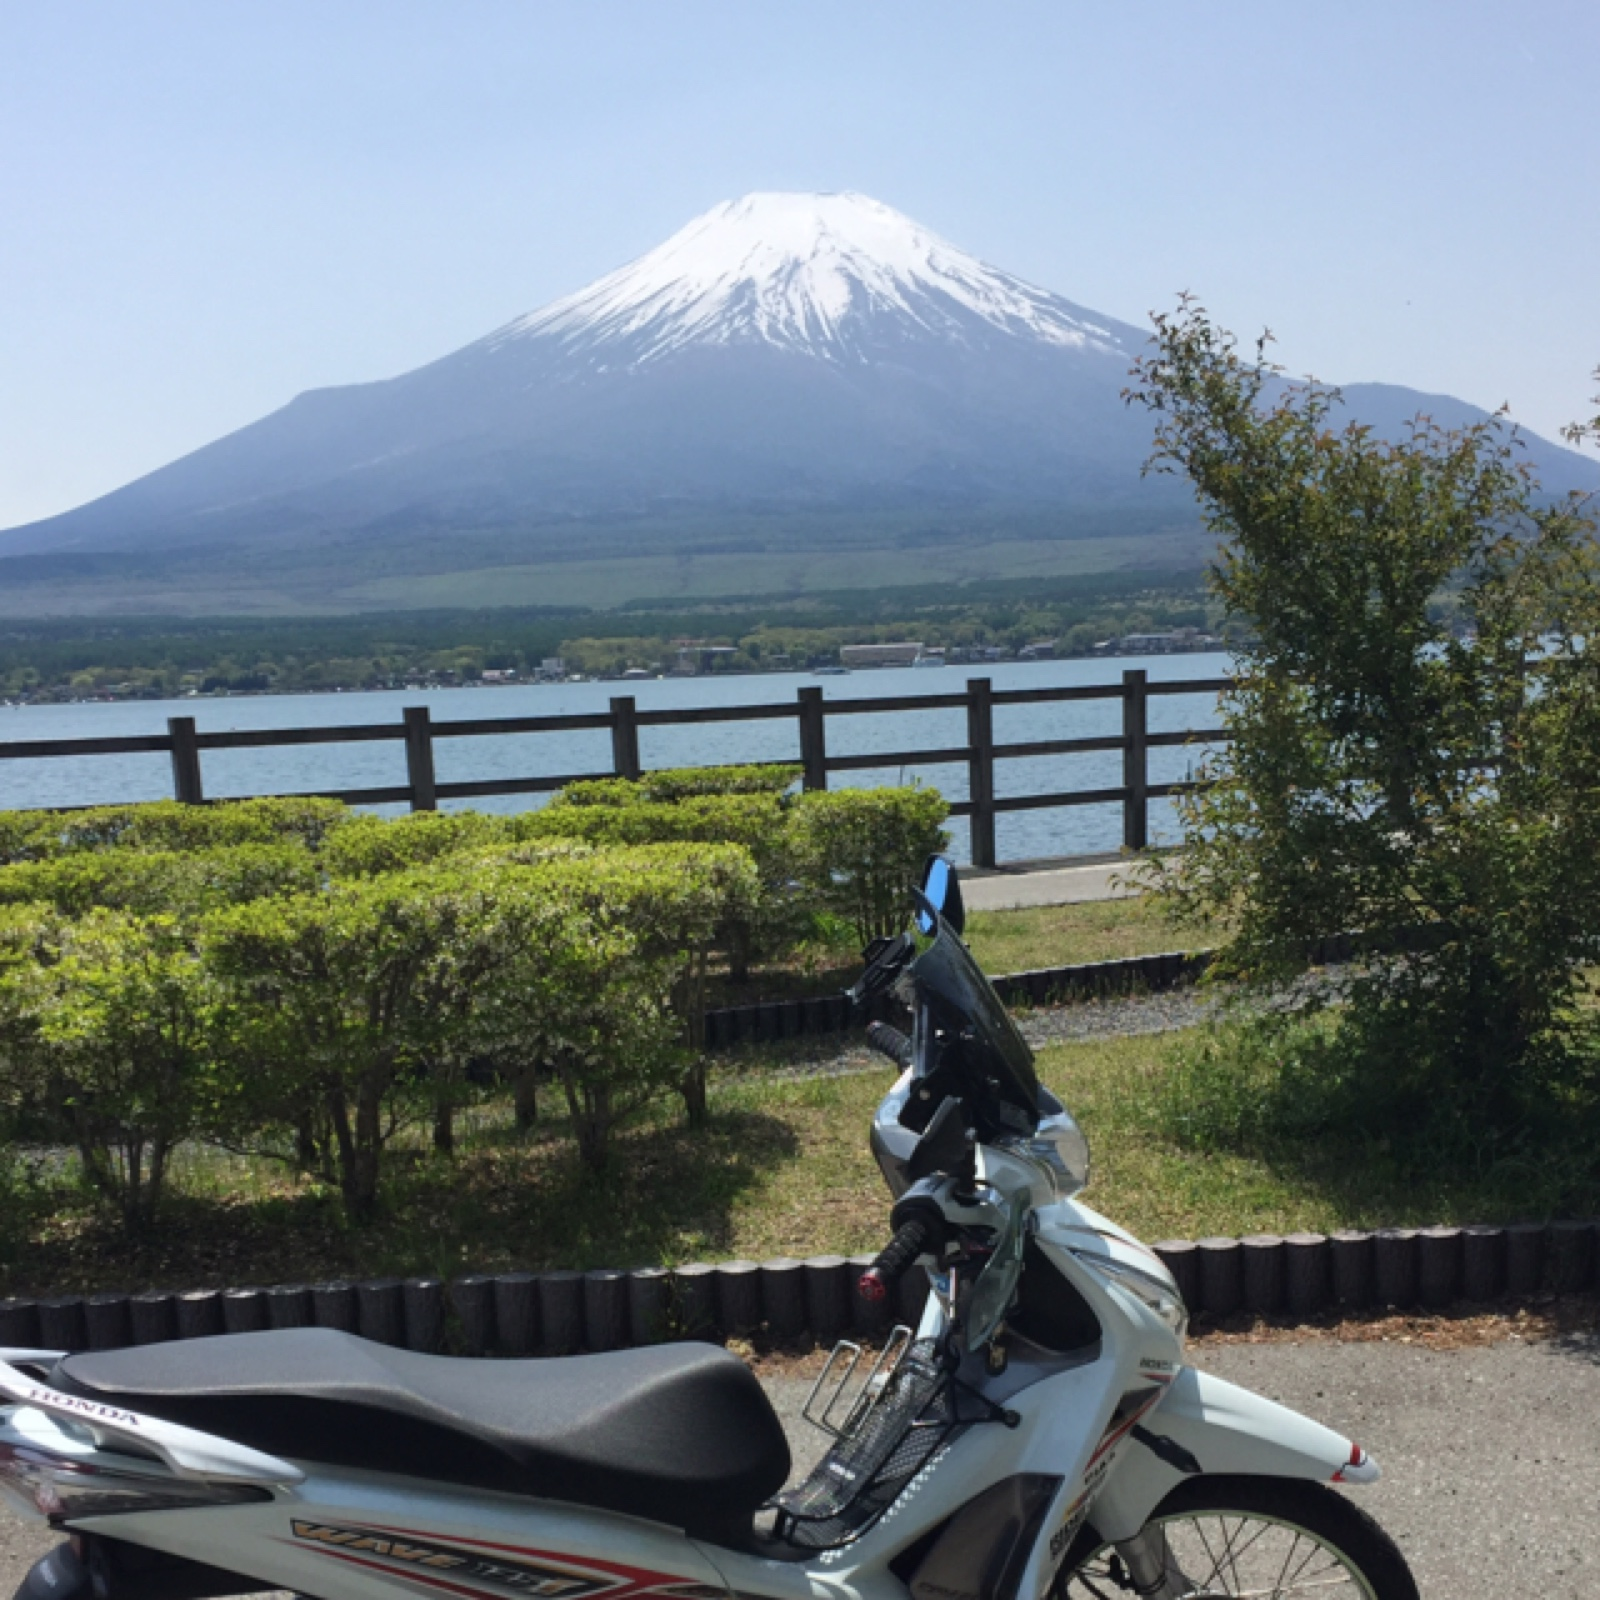 nabe23deathさんのWave125-i Helm in